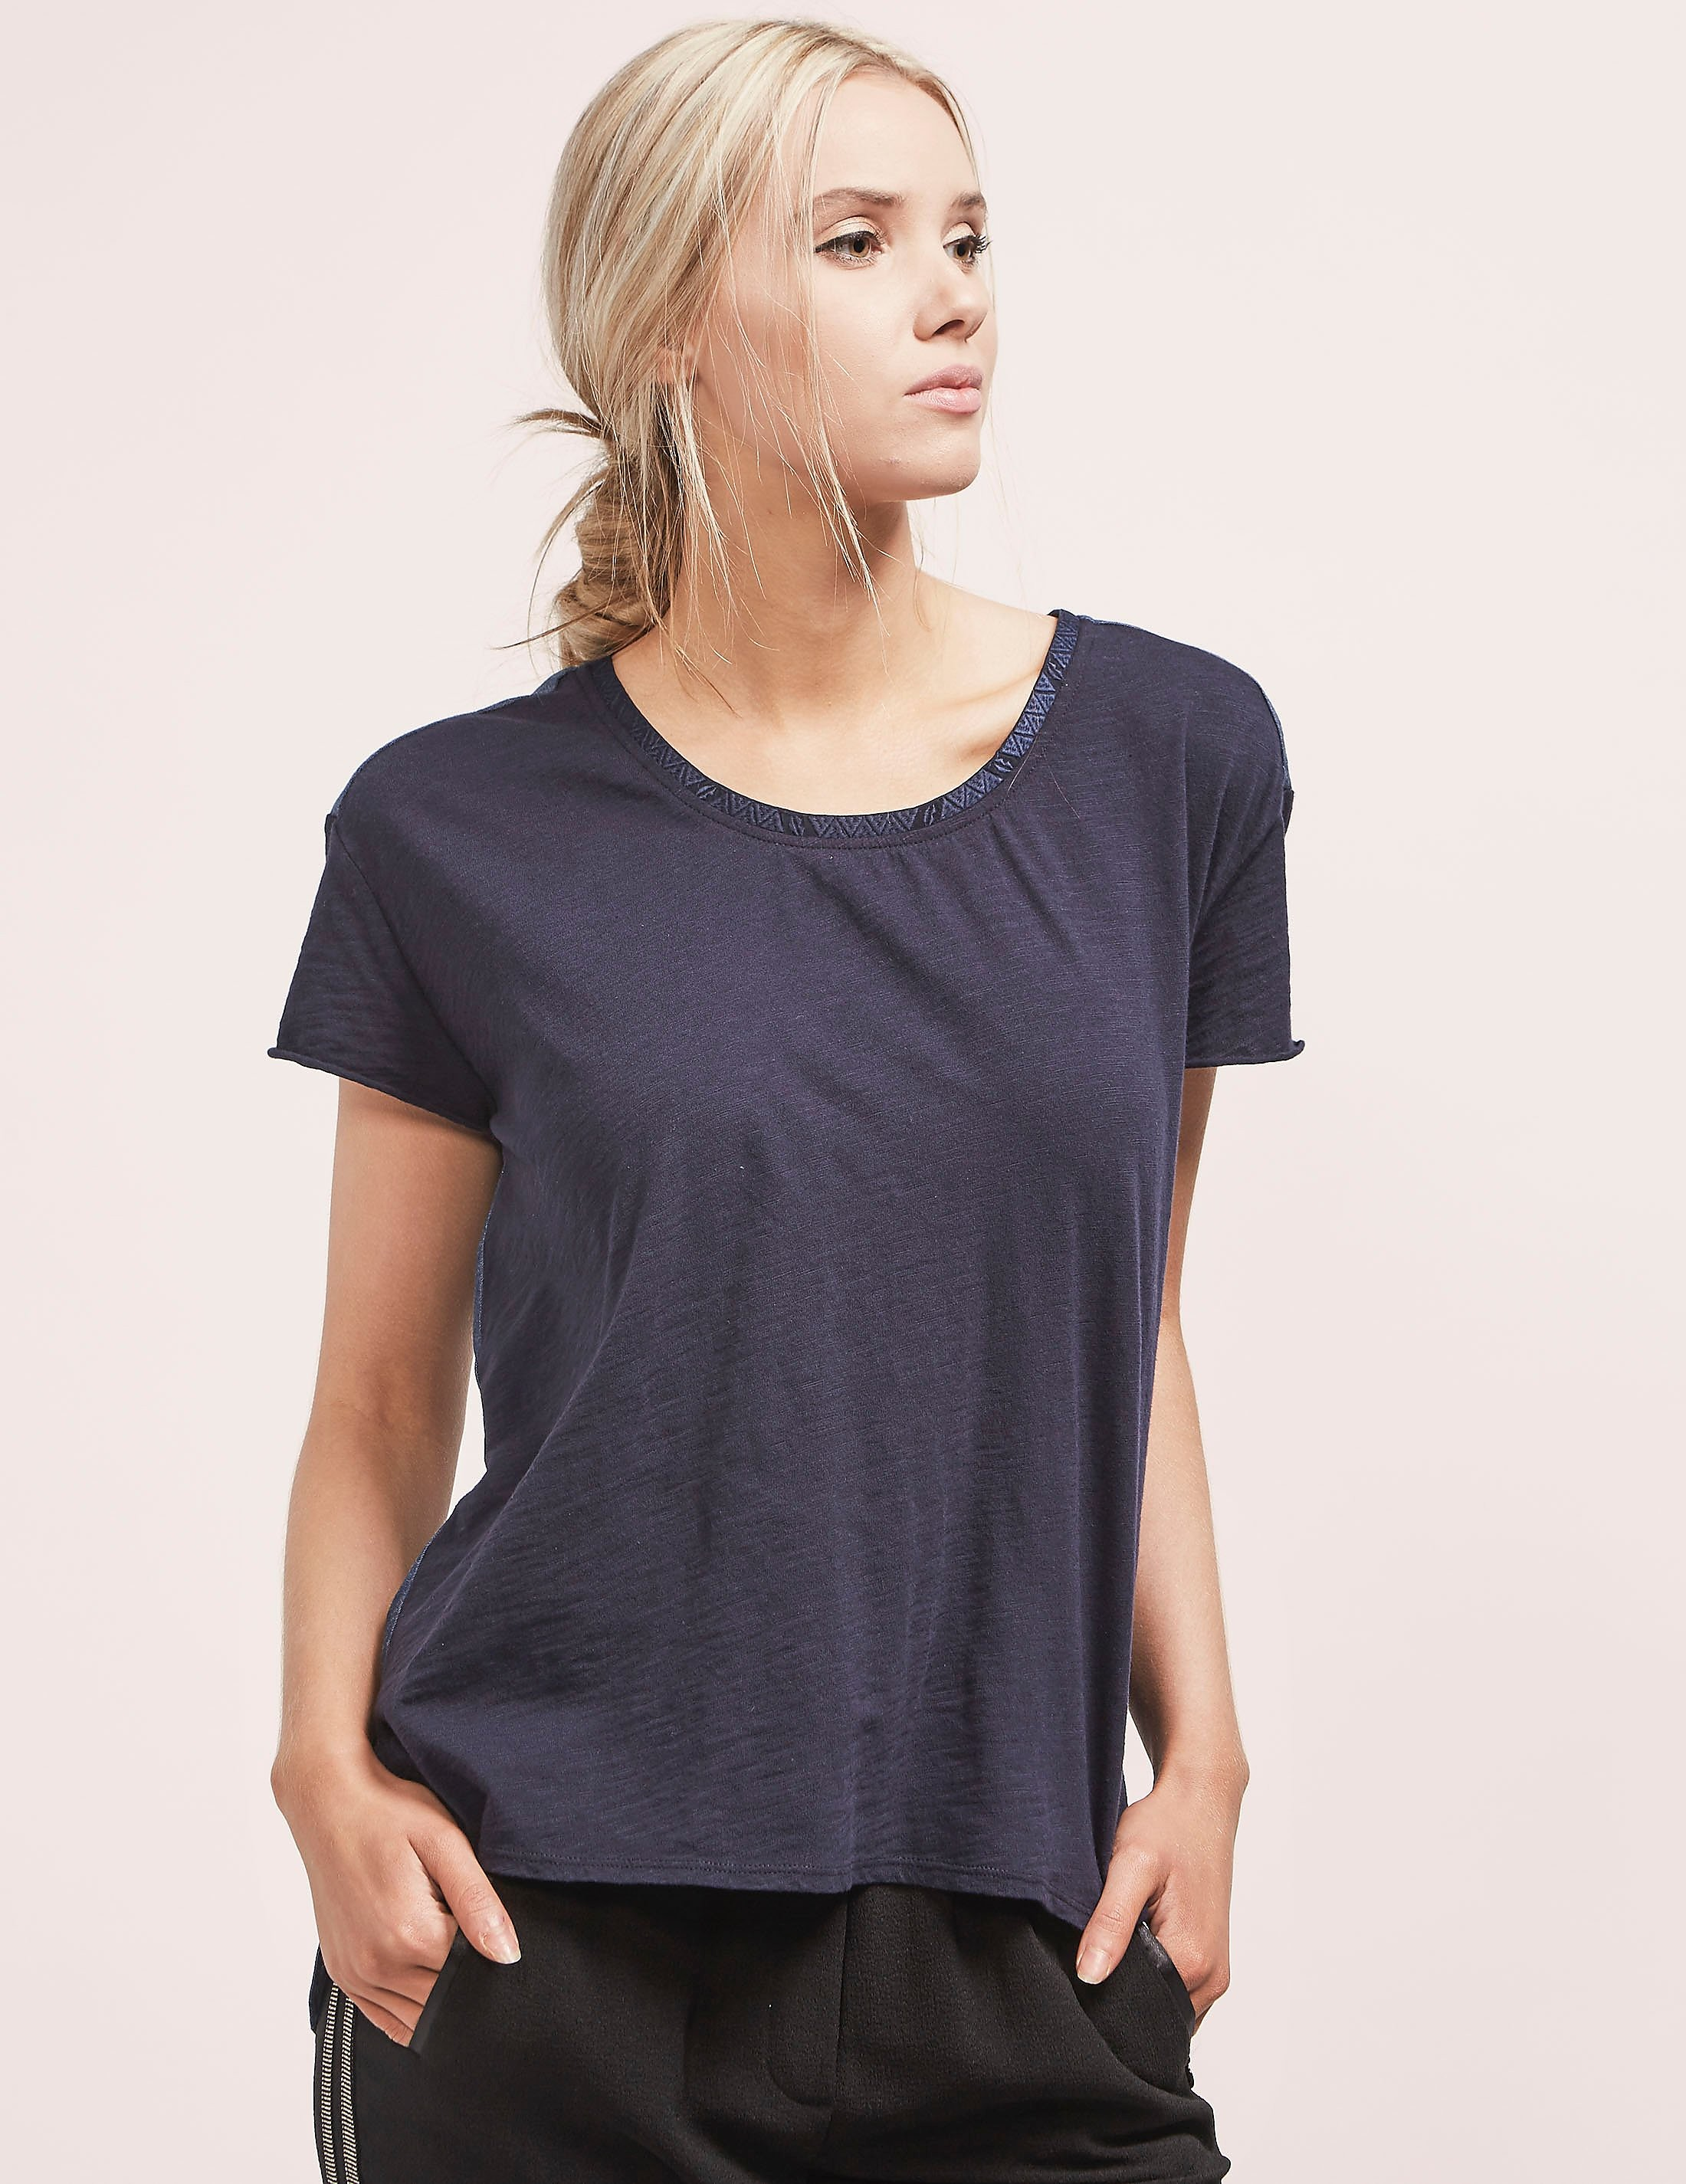 Maison Scotch Woven Back Short Sleeve T-Shirt